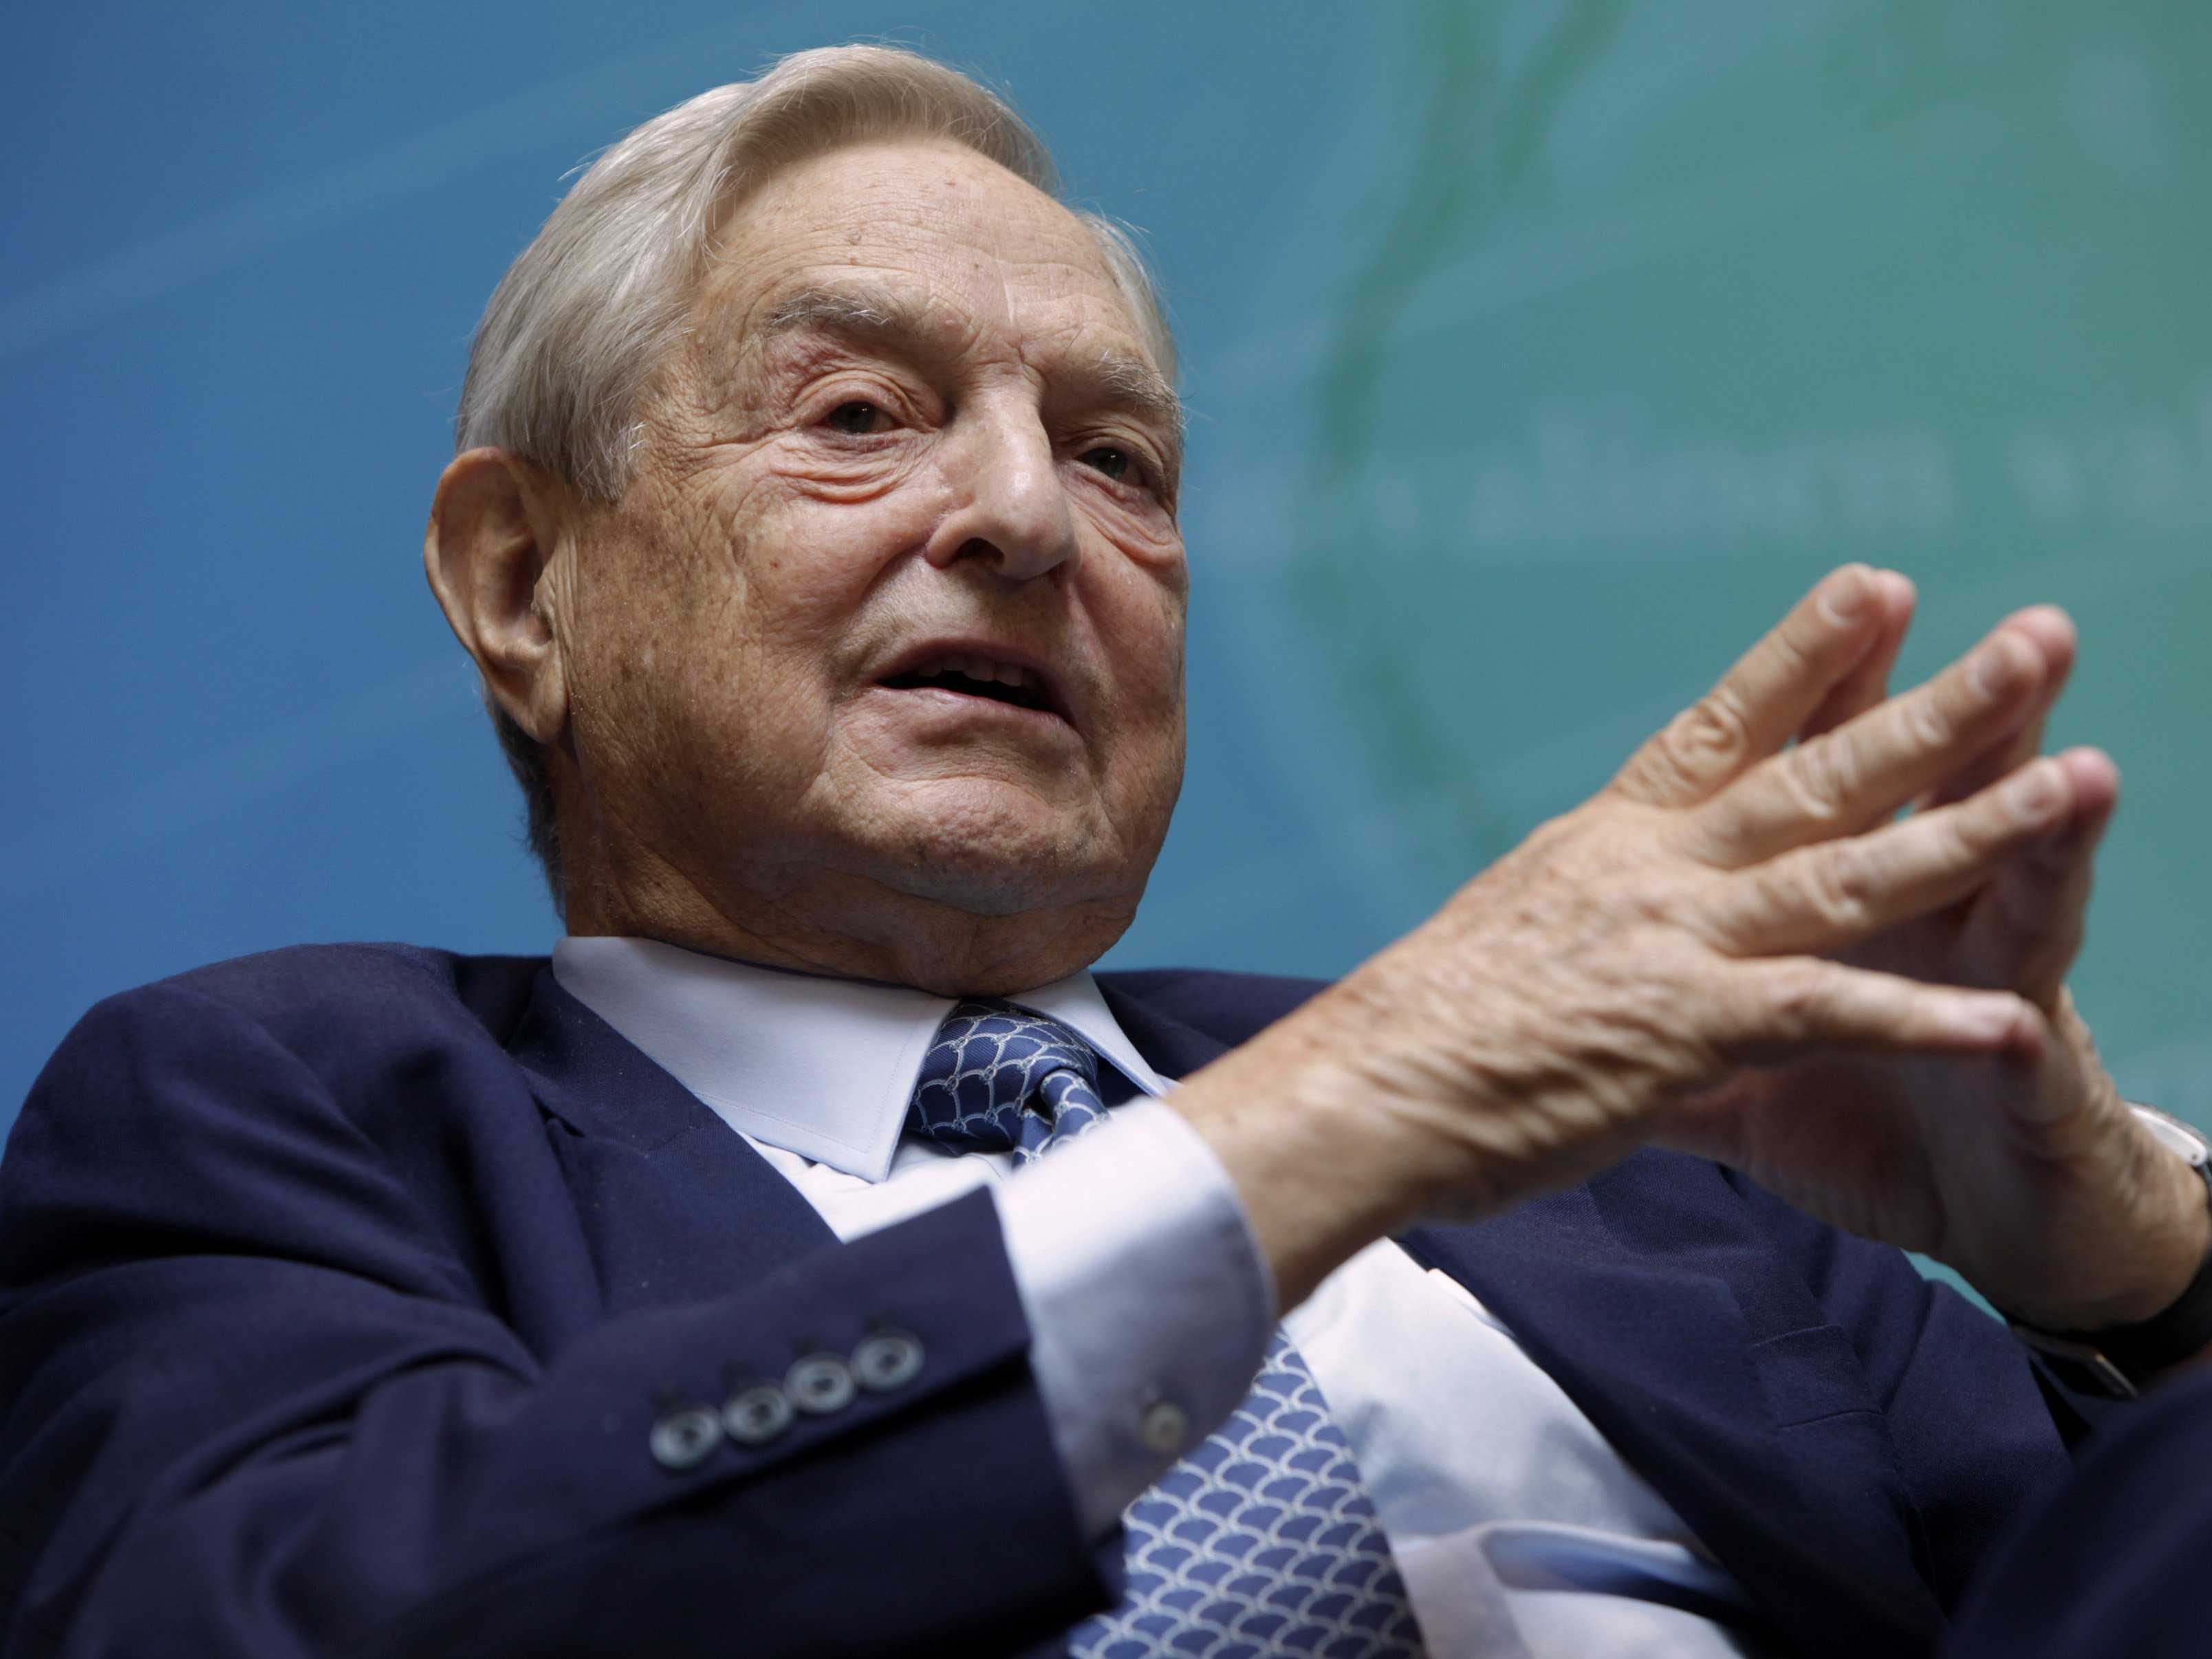 Prosecute Soros for Sedition